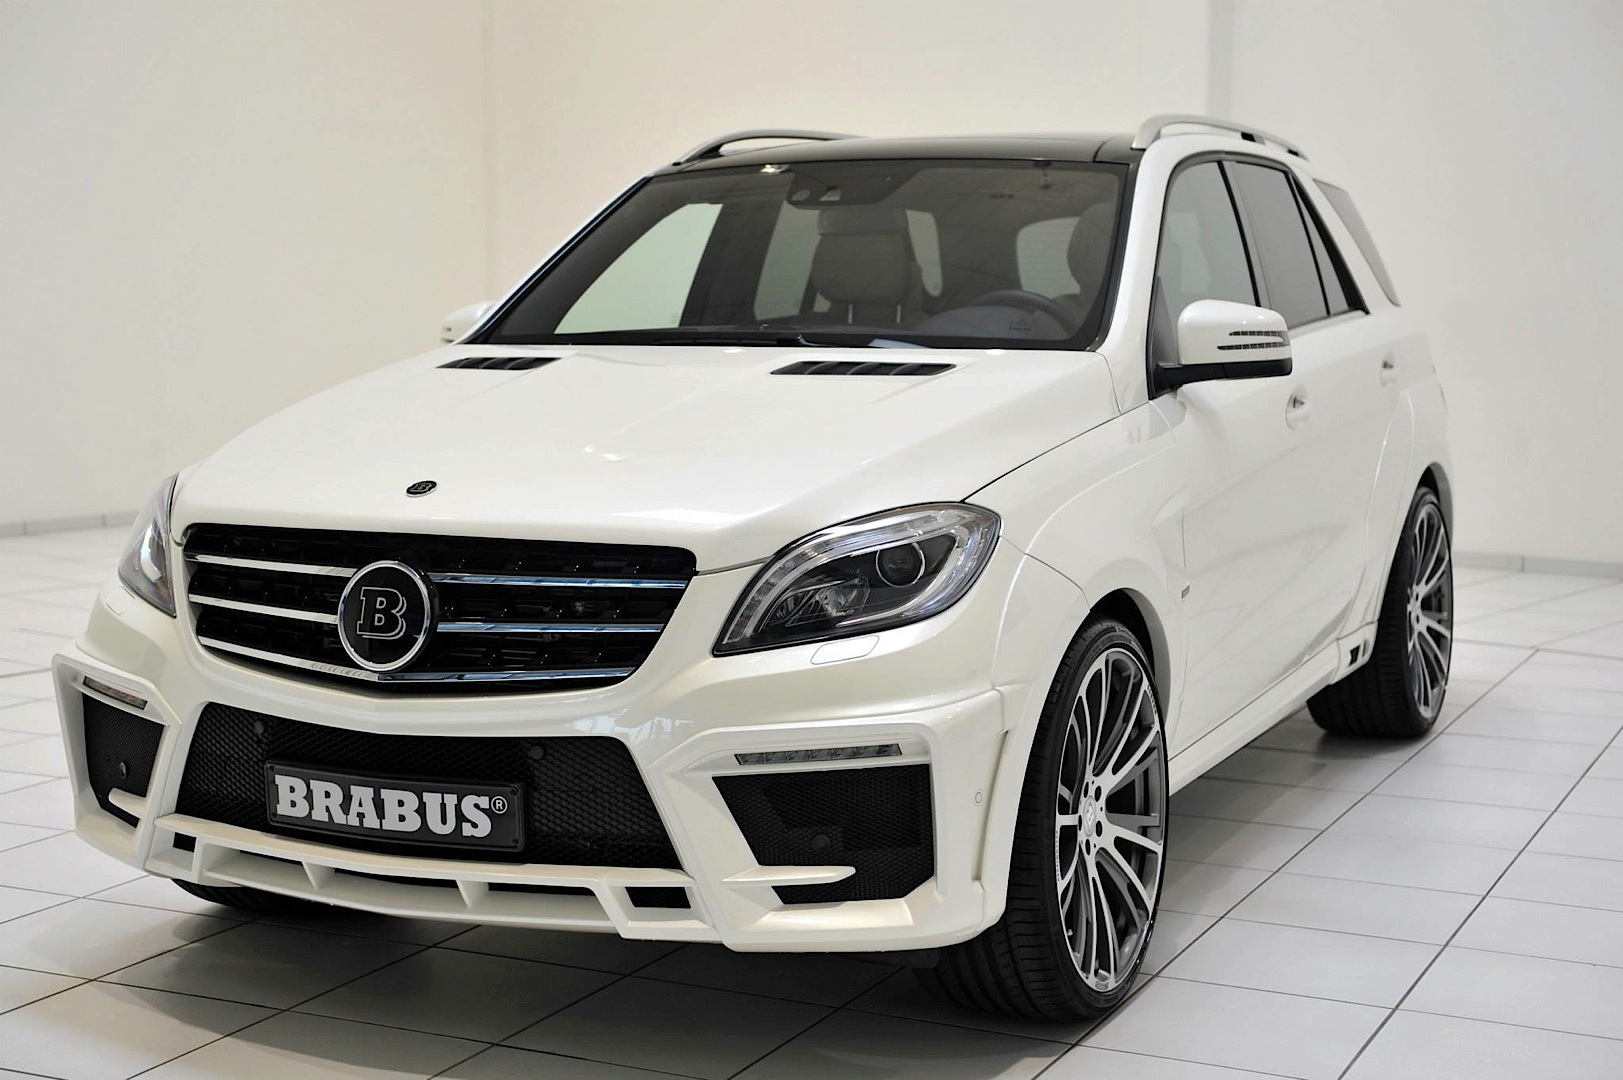 brabus unleashes 700 hp mercedes benz ml 63 amg autoevolution. Black Bedroom Furniture Sets. Home Design Ideas